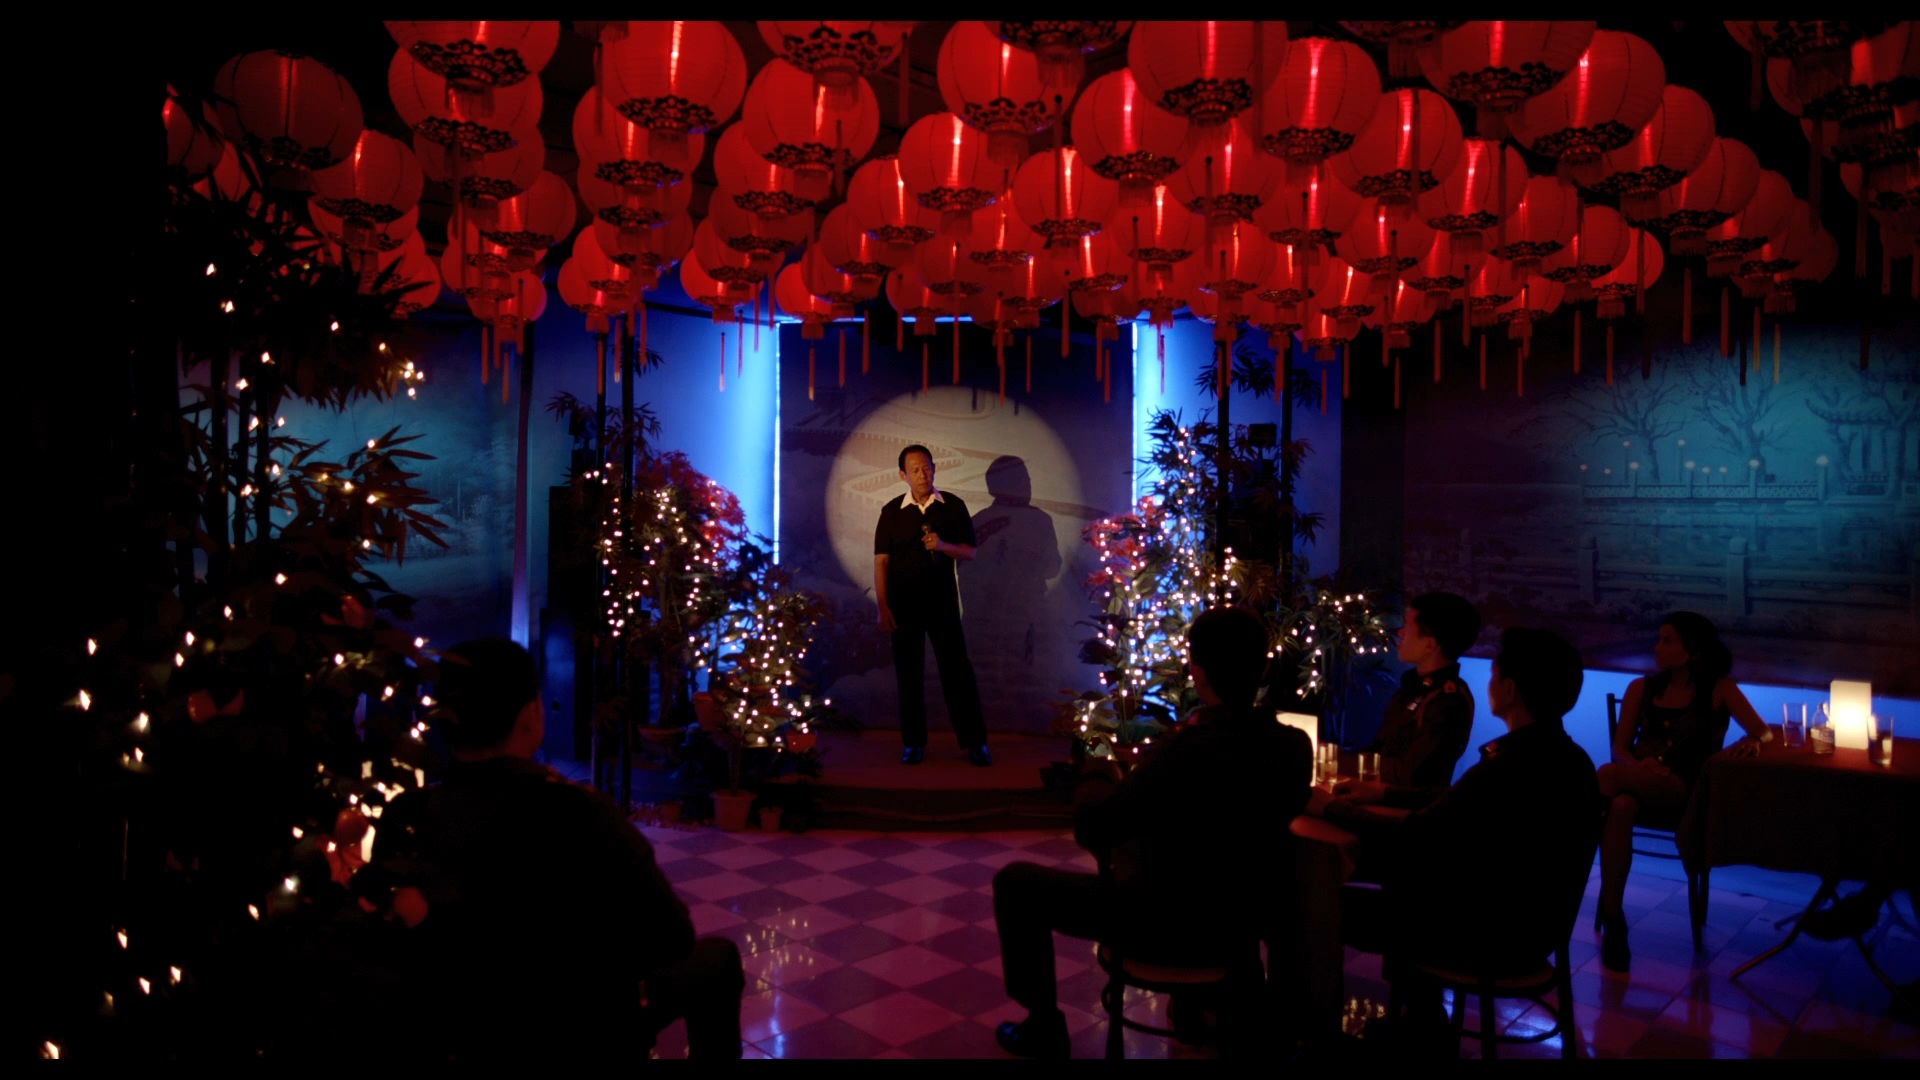 Only God Forgives Wallpaper Review only god forgives uk 1920x1080